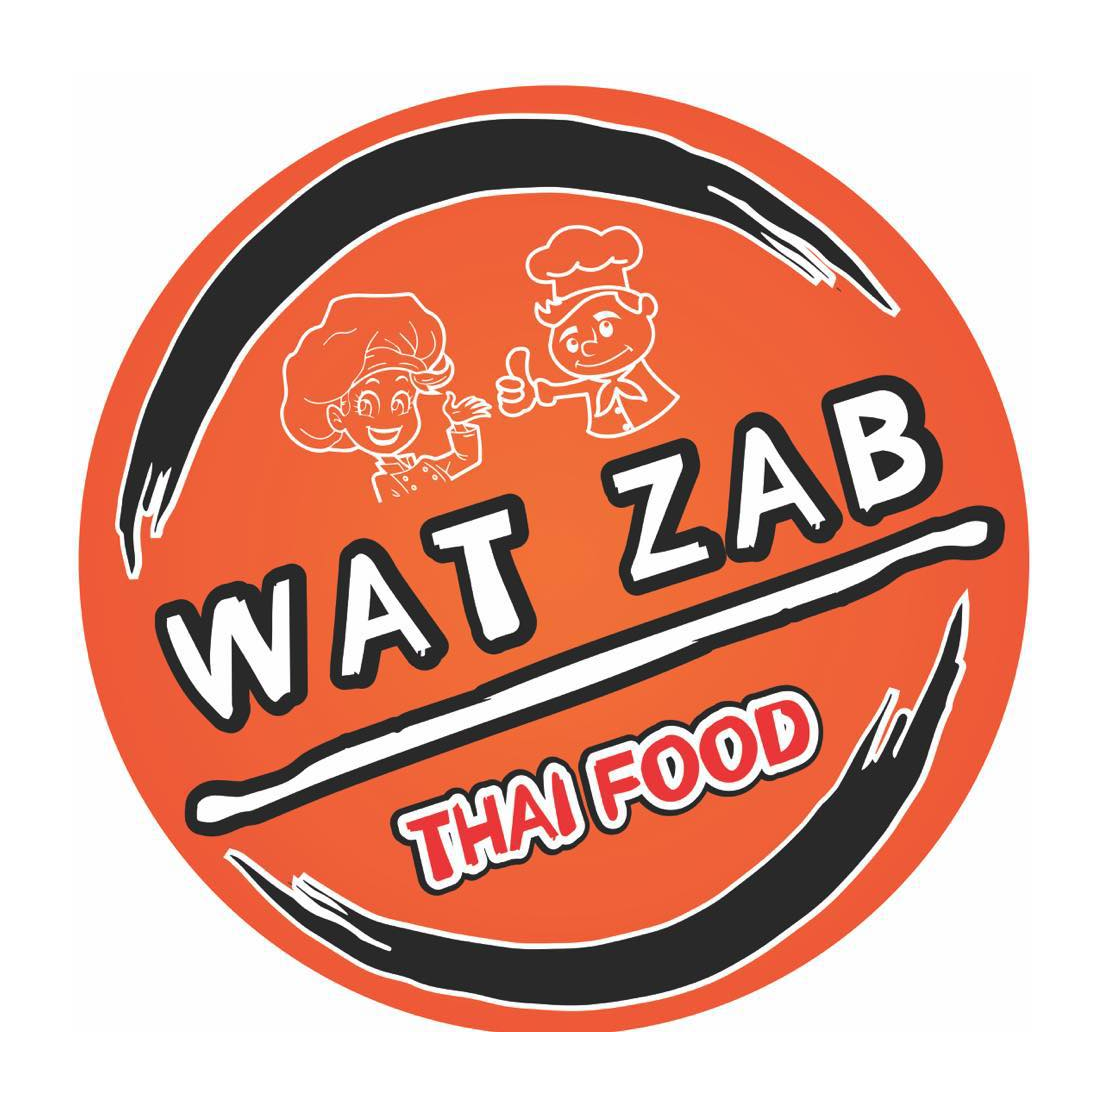 WAT ZAB Thai Food logo